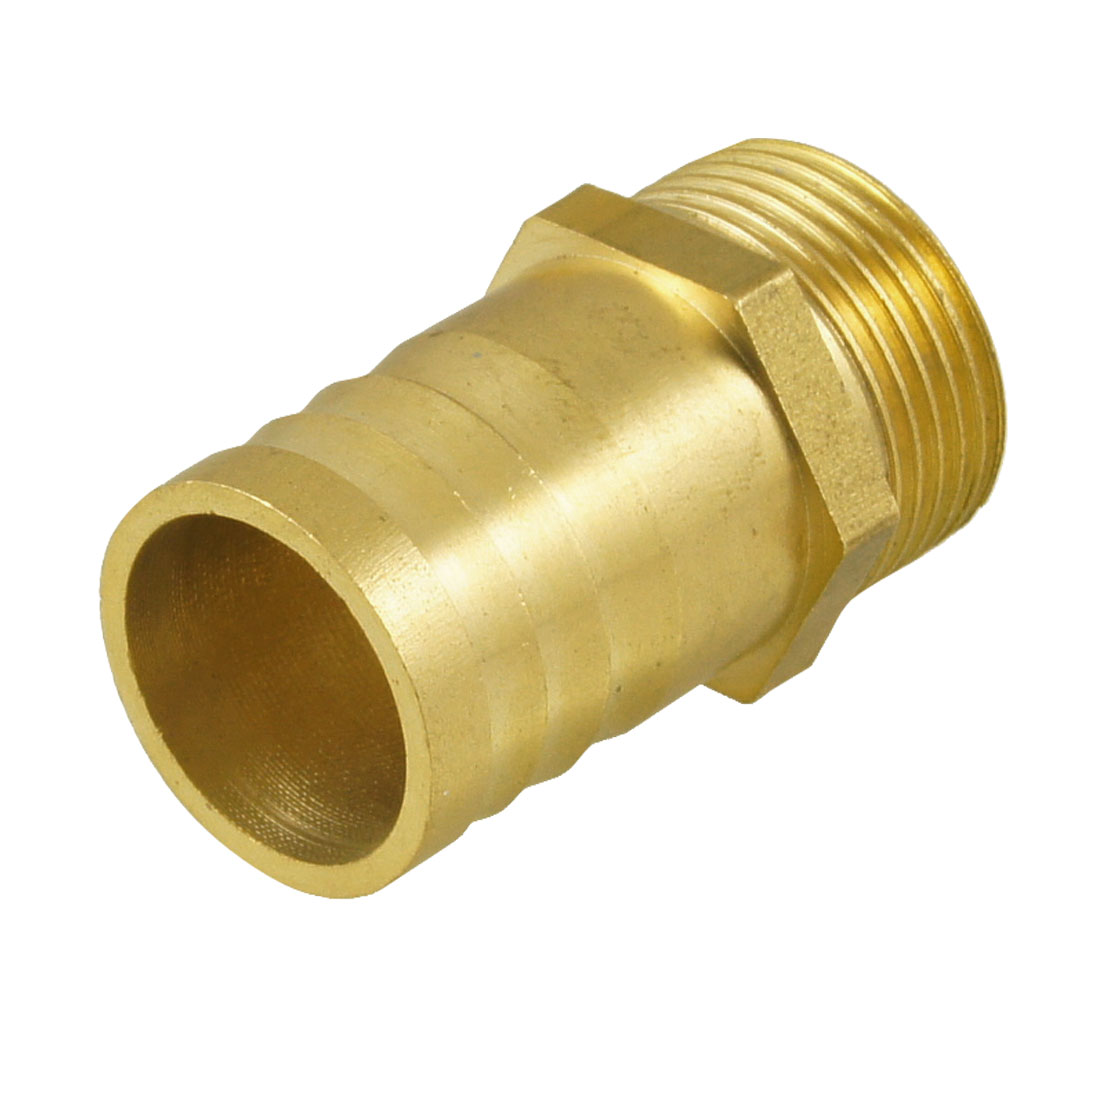 "Gold Tone Brass 25mm Fuel Gas Hose Barb 3/4"" PT Male Thread Coupling Fitting"